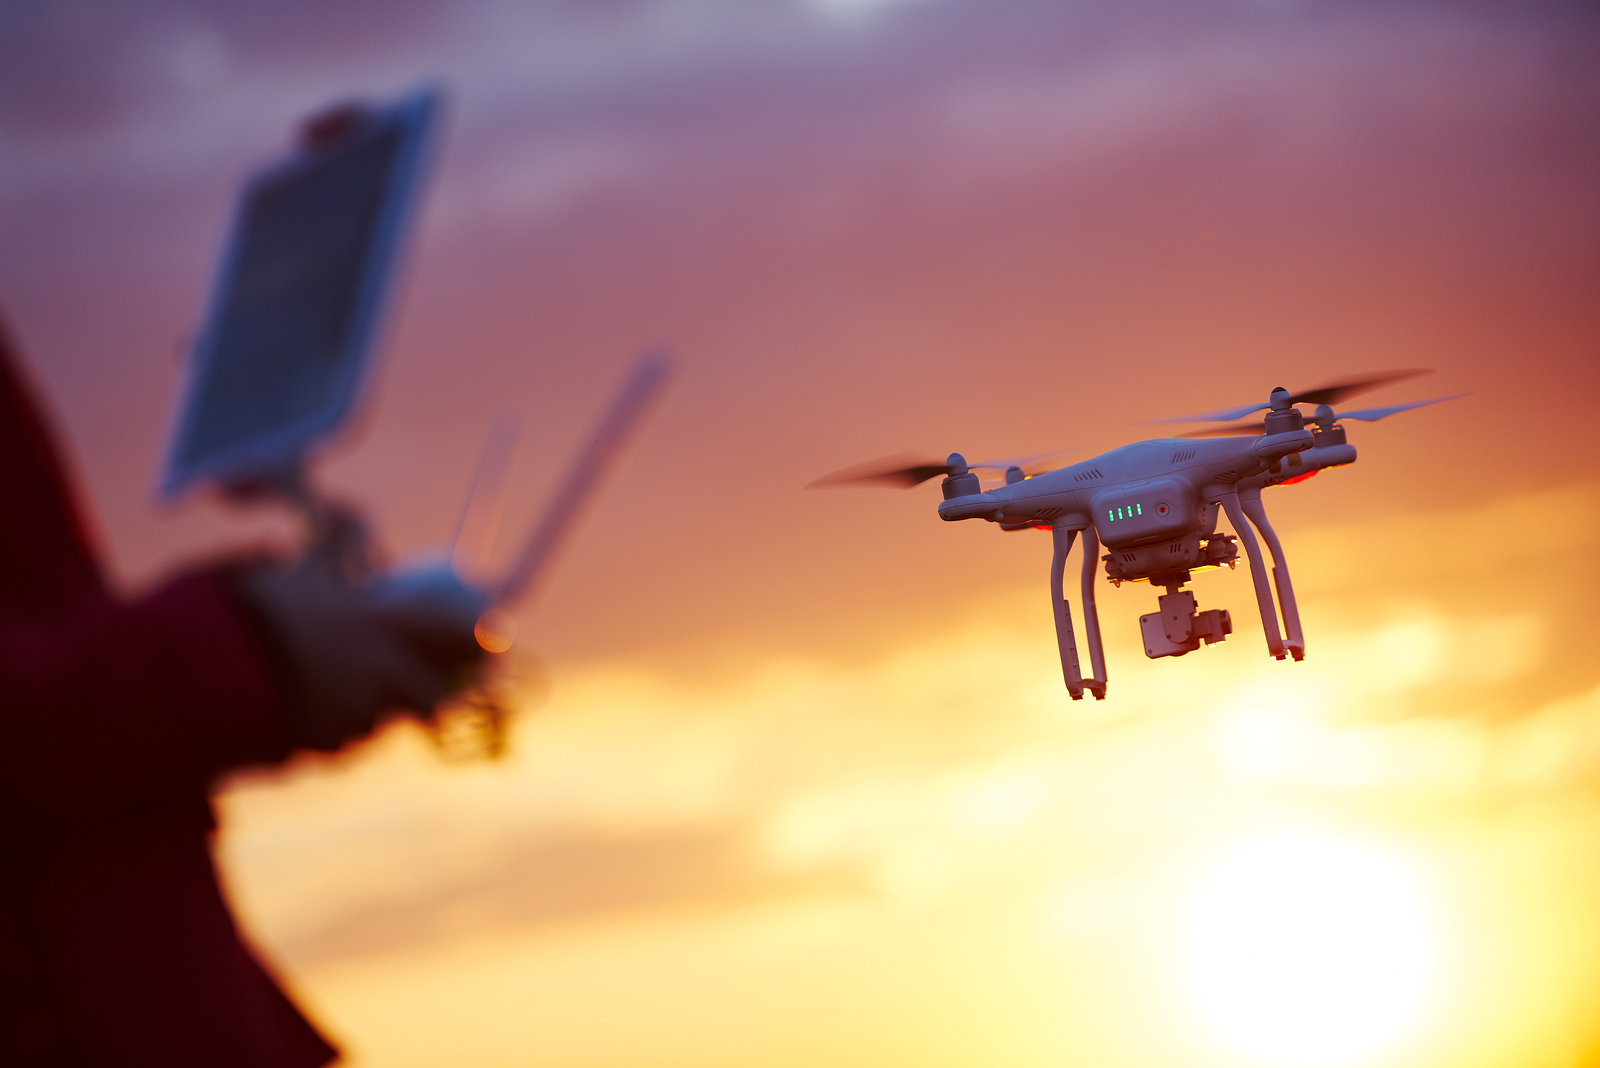 DJI & Edgybees, a Cinderella Story: Corporations Giving Startups a Step Up